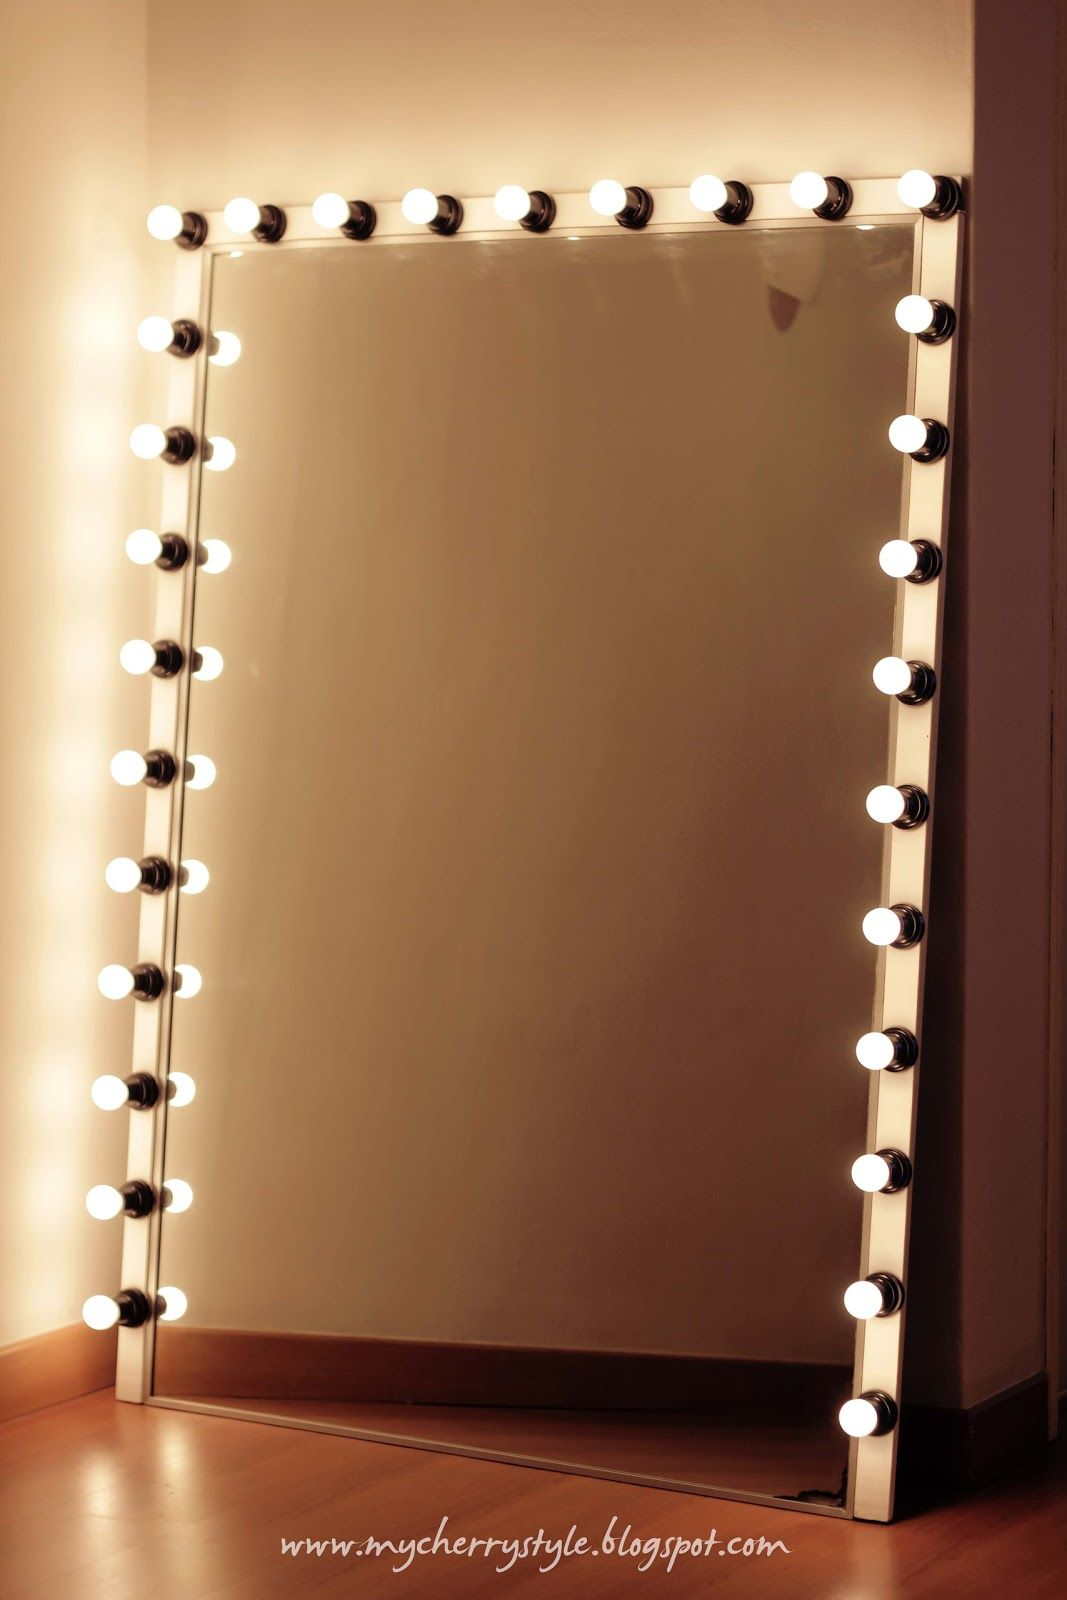 stand up vanity mirror with lights. 17 DIY Vanity Mirror Ideas to Make Your Room More Beautiful VANITY MIRROR WITH DESK  LIGHTS Desk light Vanities and Desks